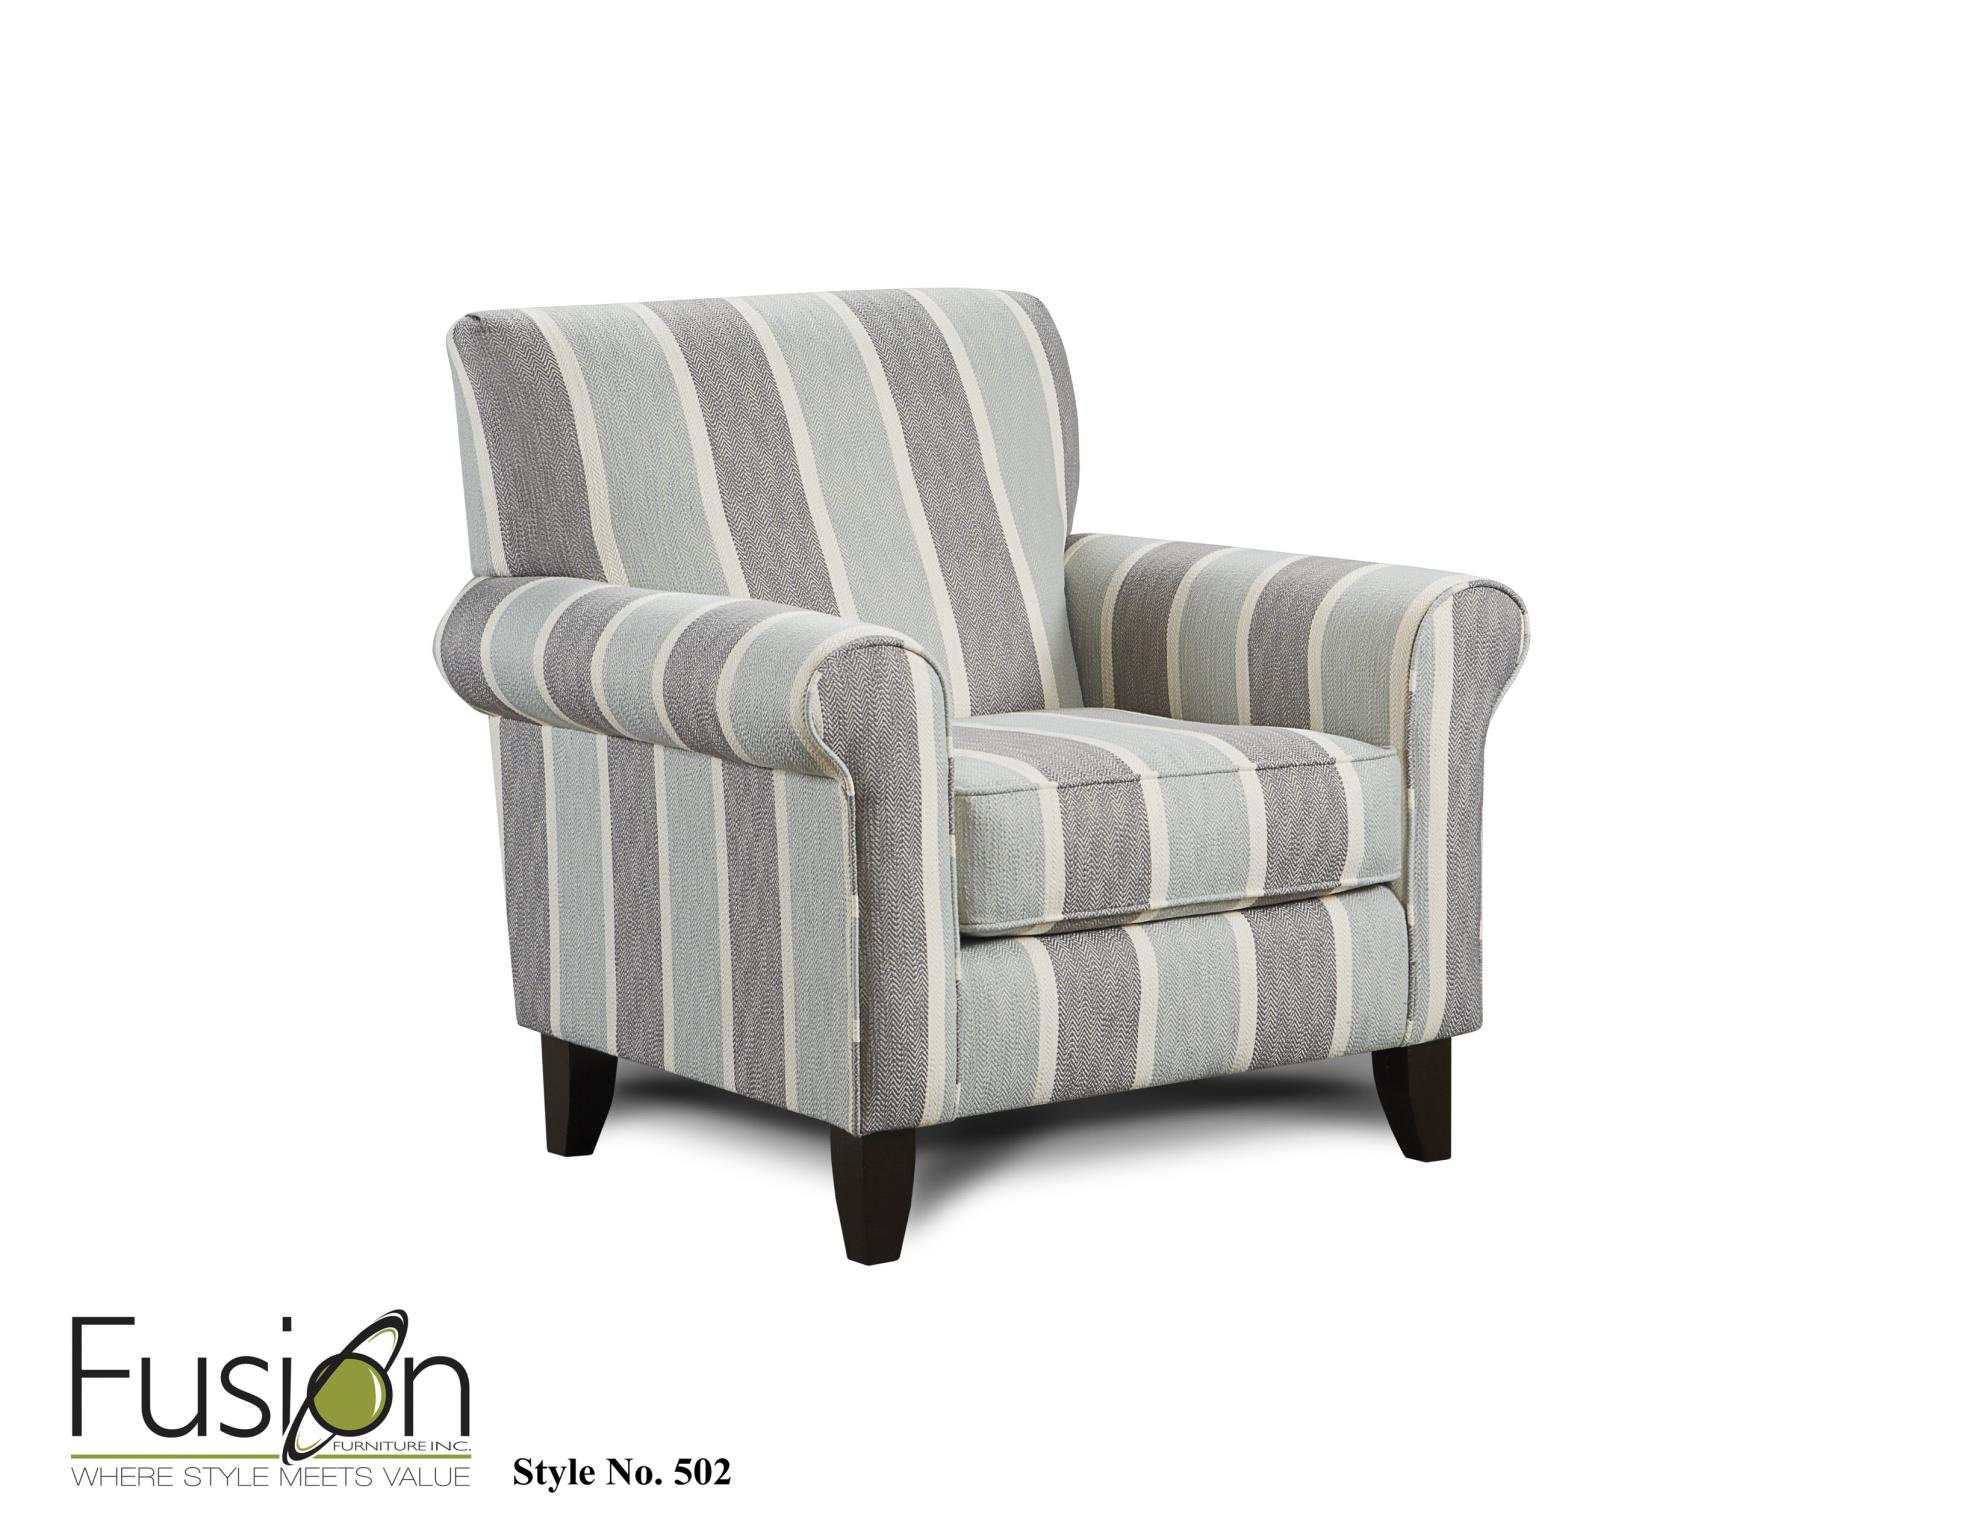 Fusion Furniture Grande Mist Sofa And Loveseat Mikes